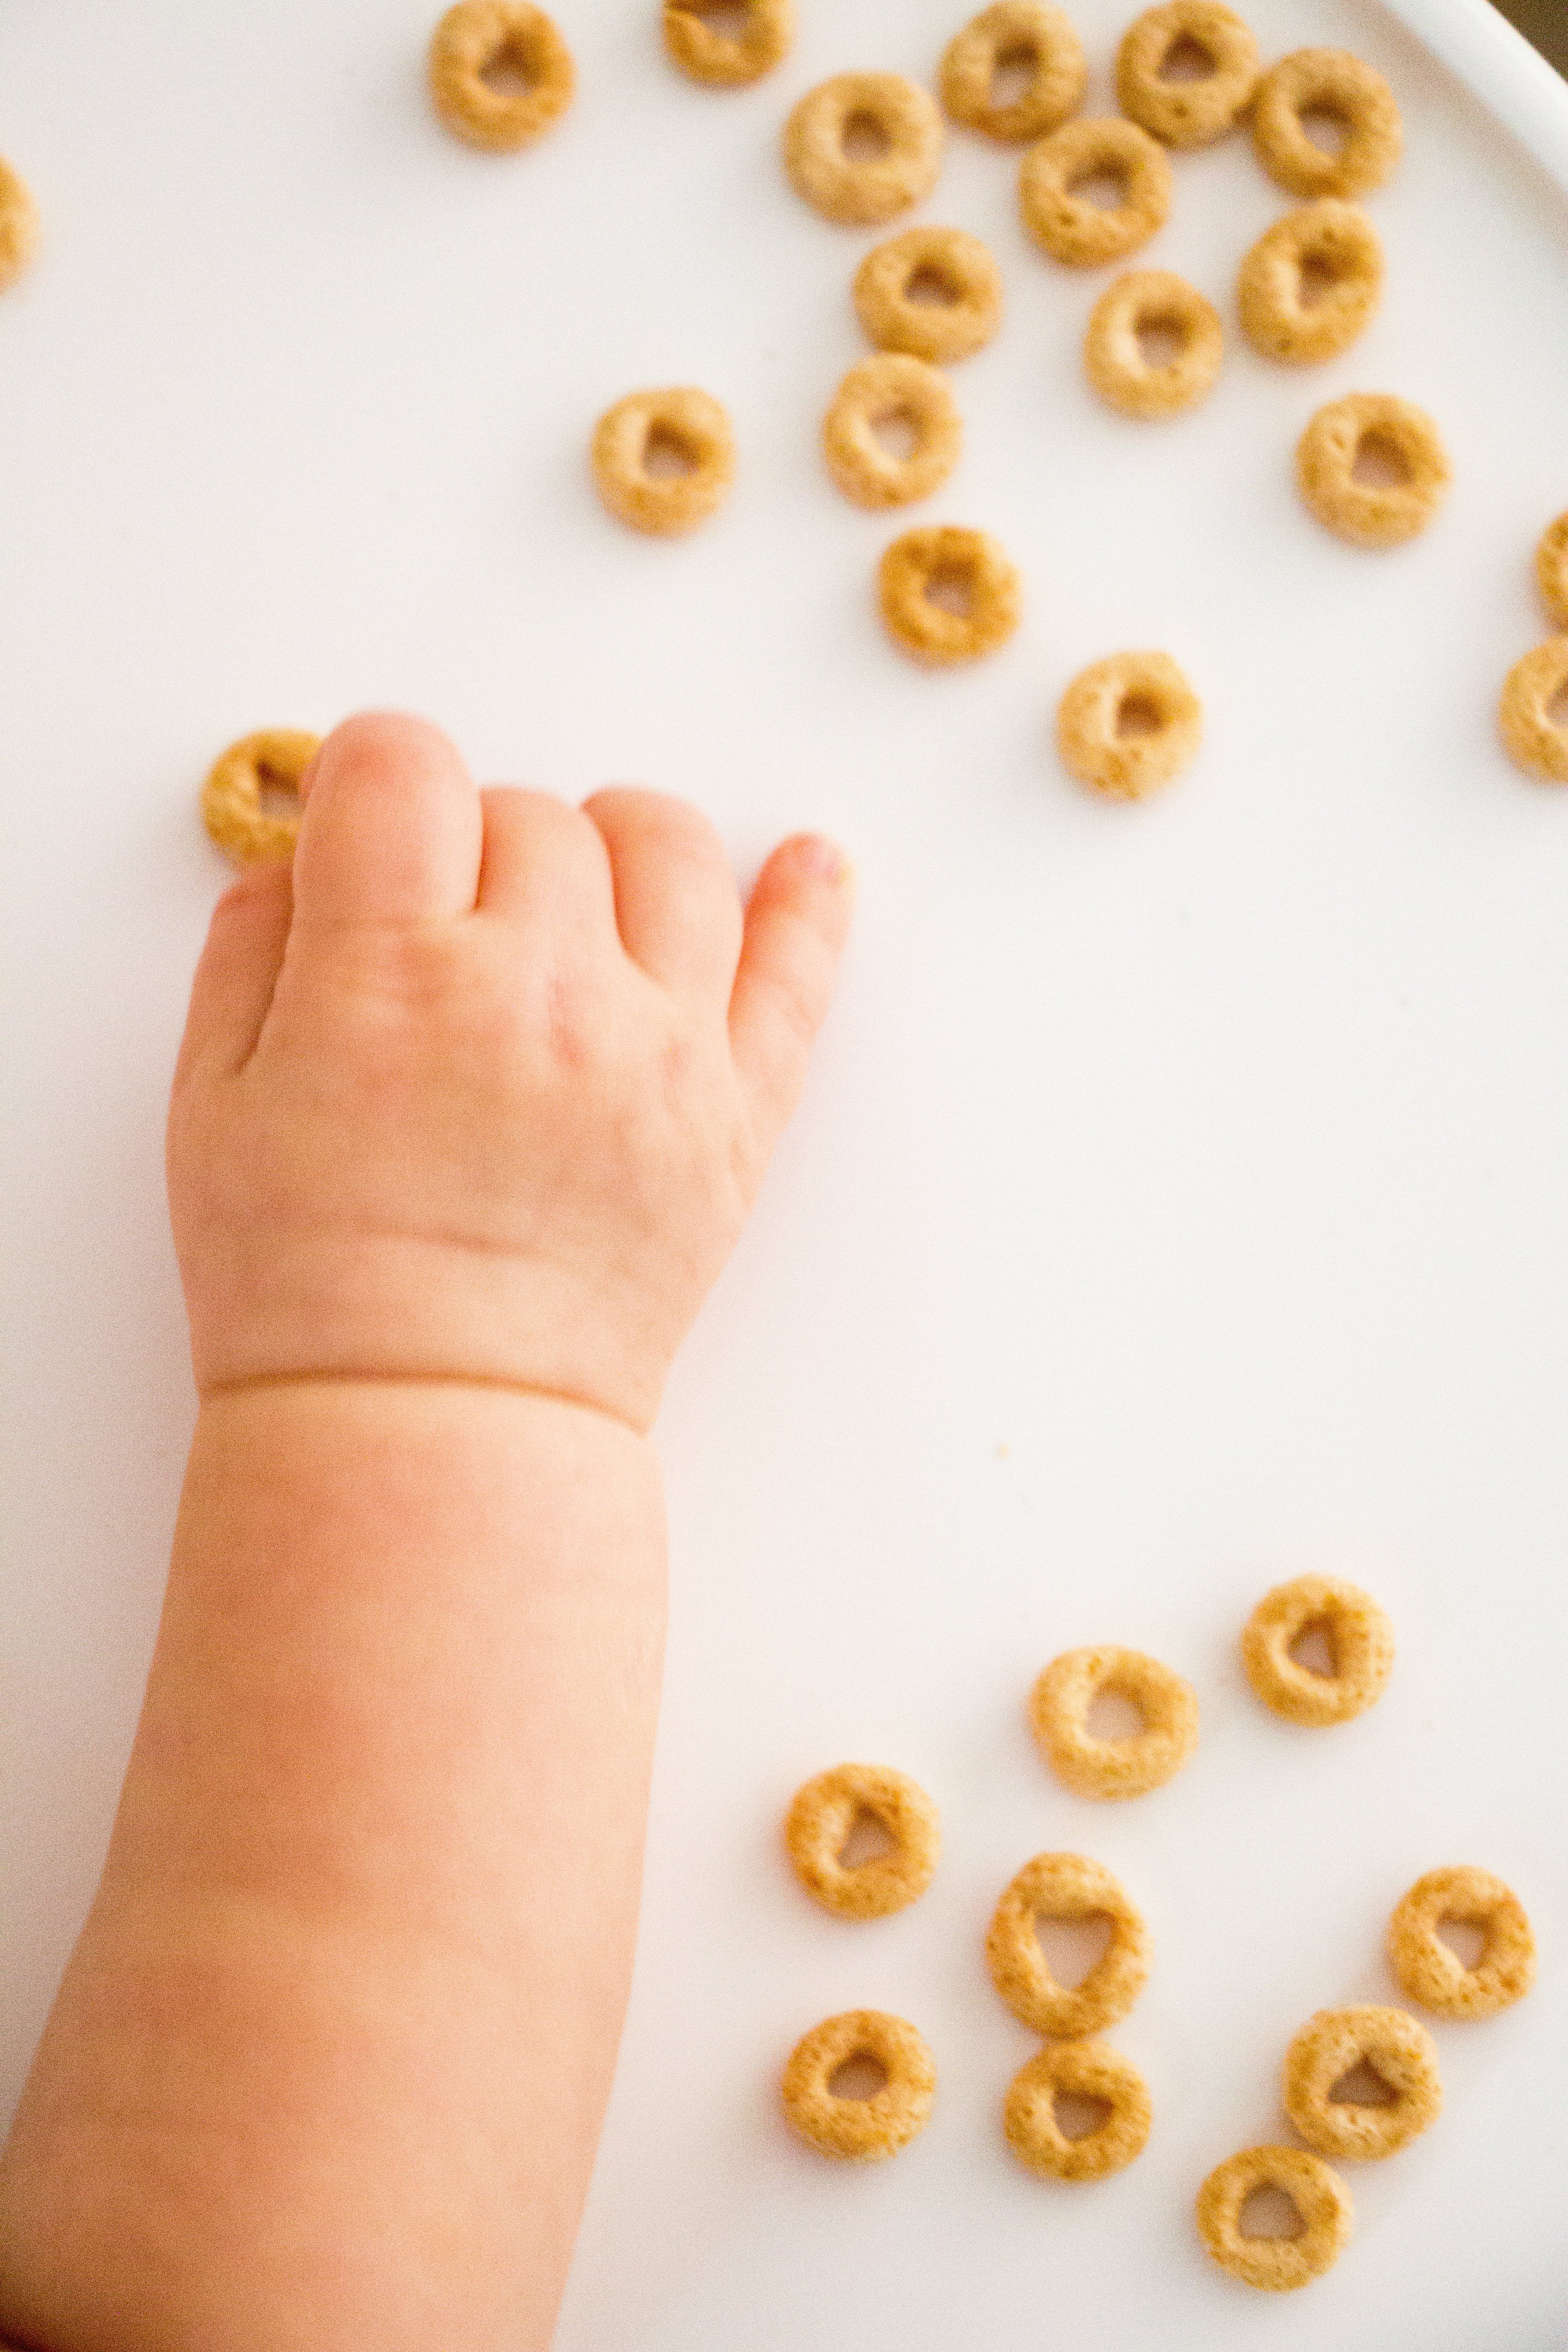 Thinking of trying baby led weaning with your baby? We share the dos and don'ts in this BLW beginners guide for starting solids without spoon-feeding.